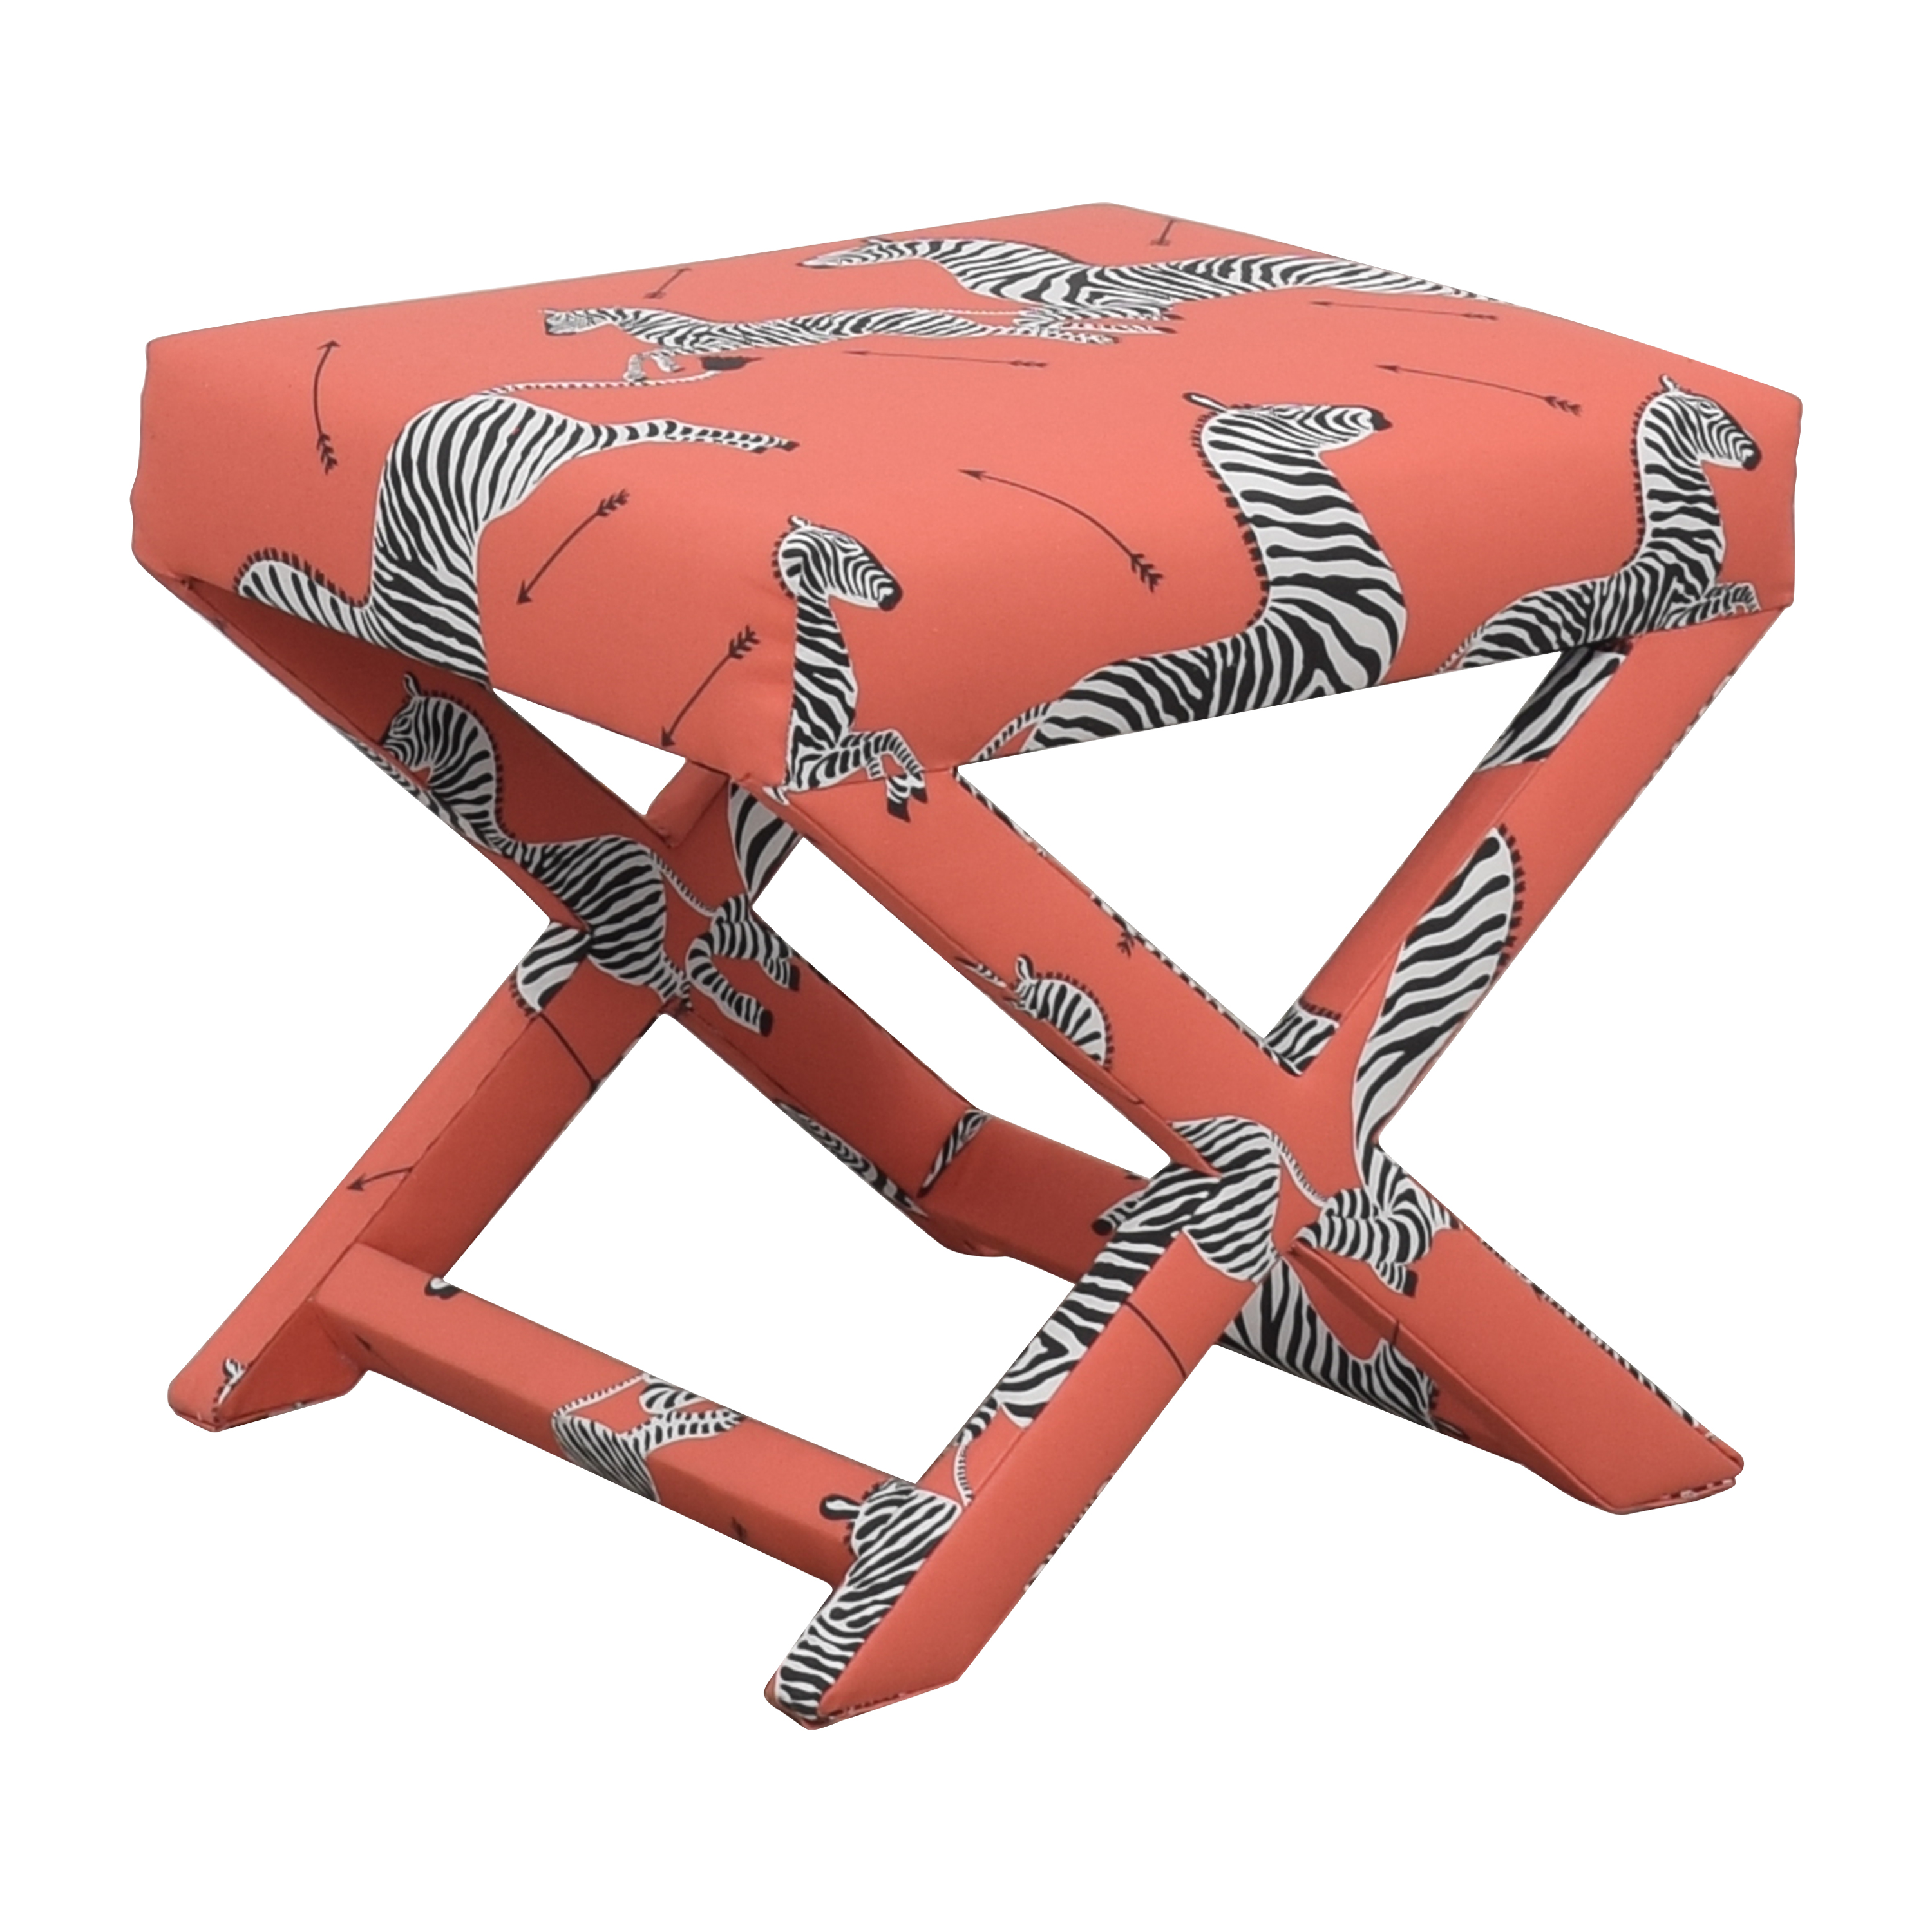 The Inside The Inside Coral Zebra X Bench dimensions